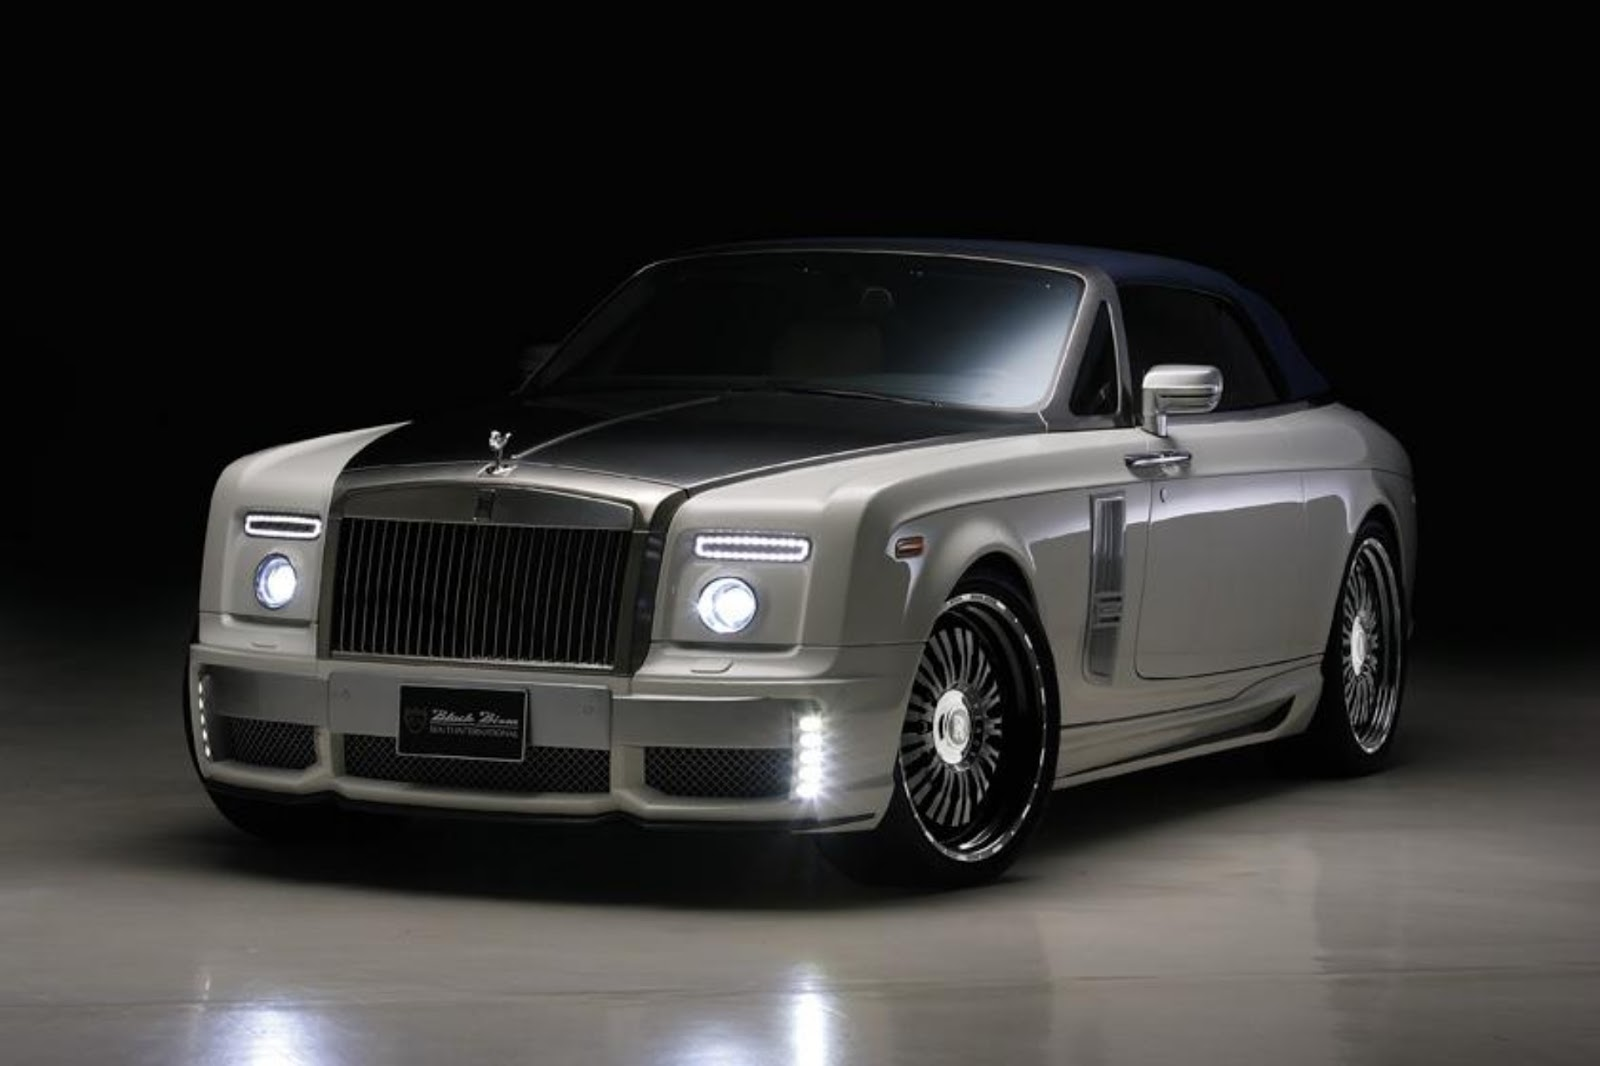 Rolls royce phanthom photo - 1